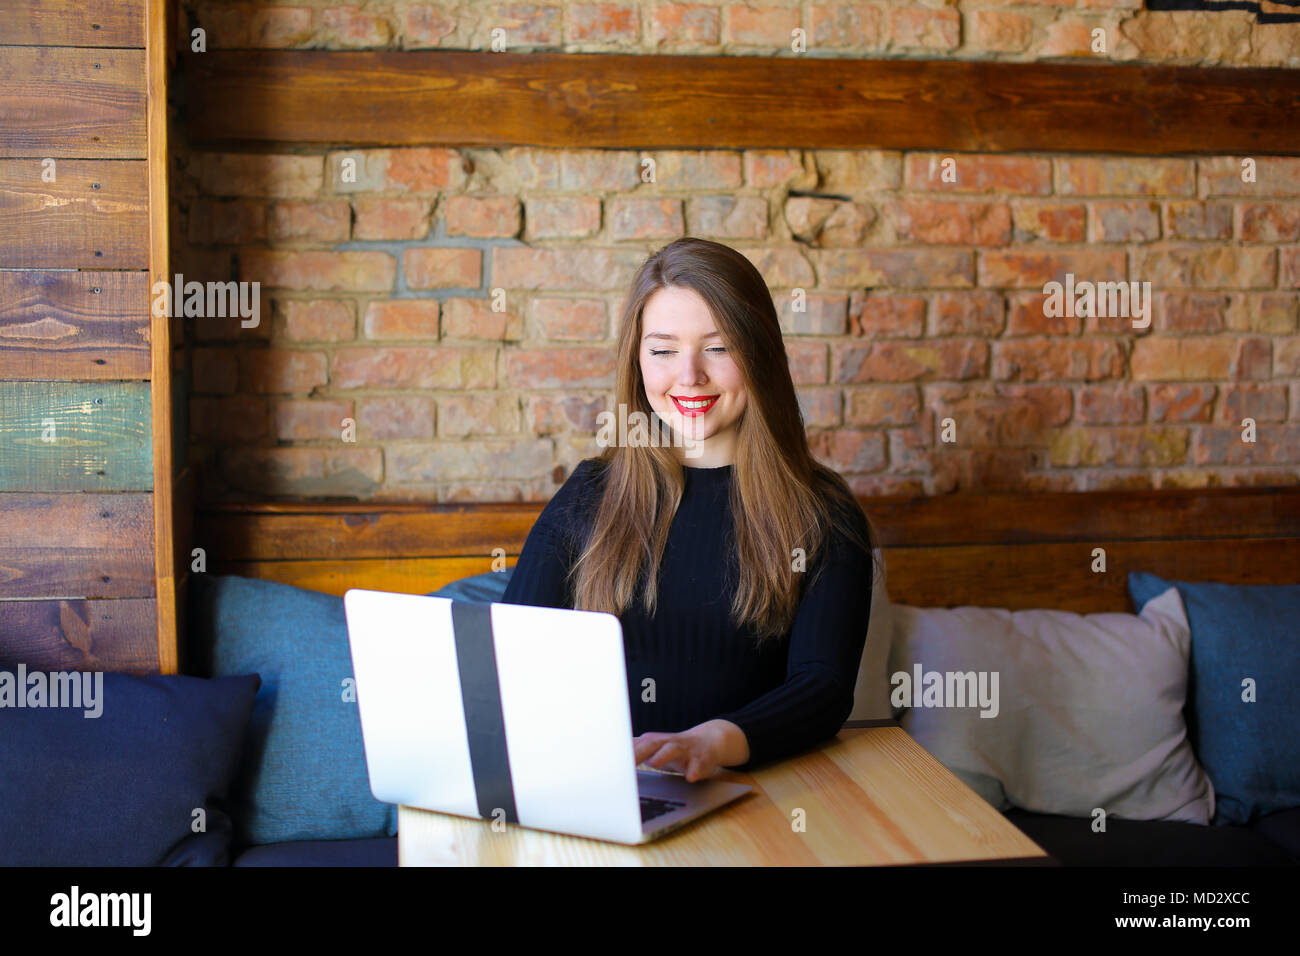 Woman with red lips using laptop at cafe. - Stock Image